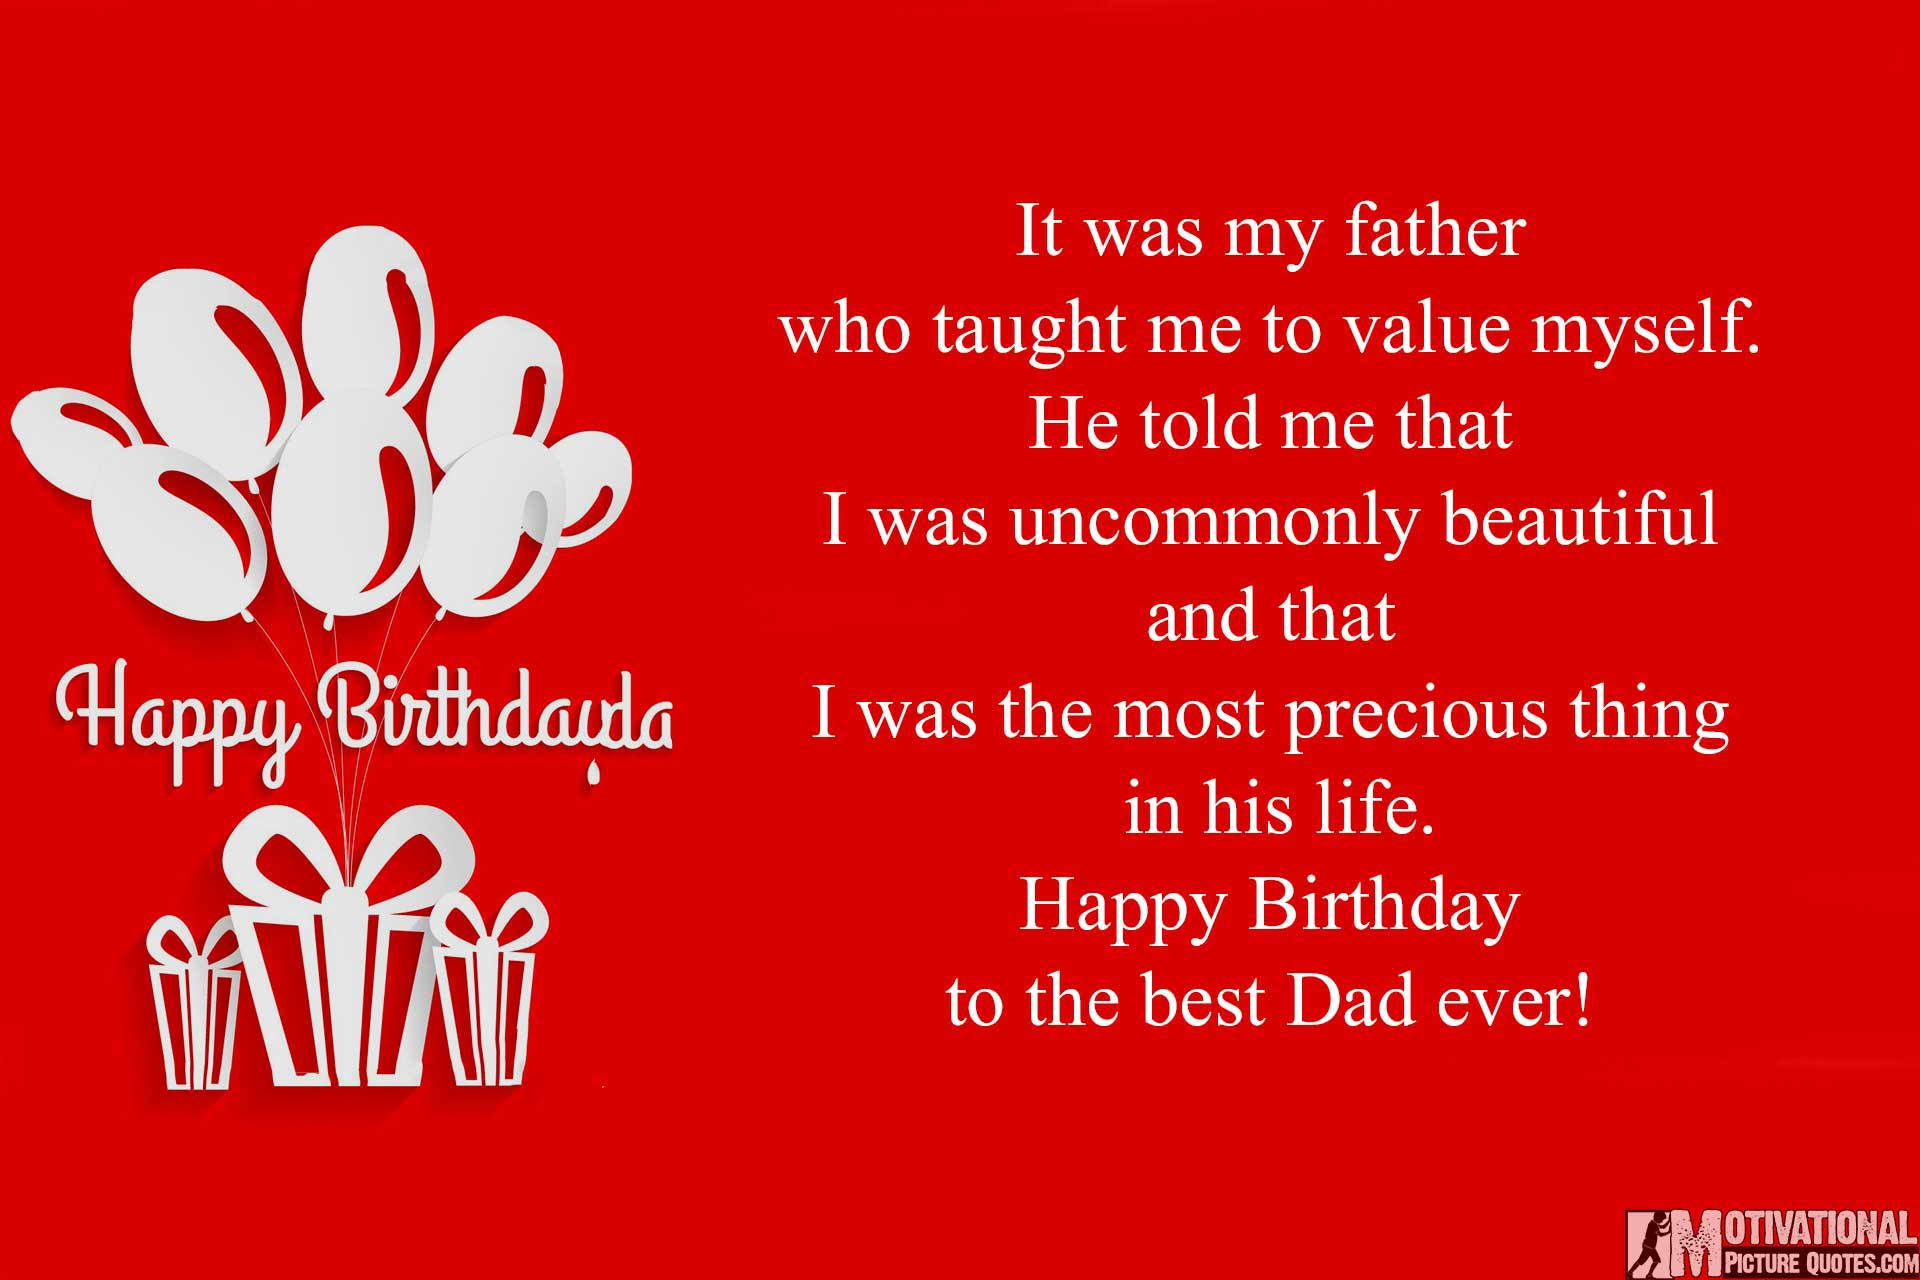 Image of: Becomes Birthday Quotes For Father Insbright 35 Inspirational Birthday Quotes Images Insbright